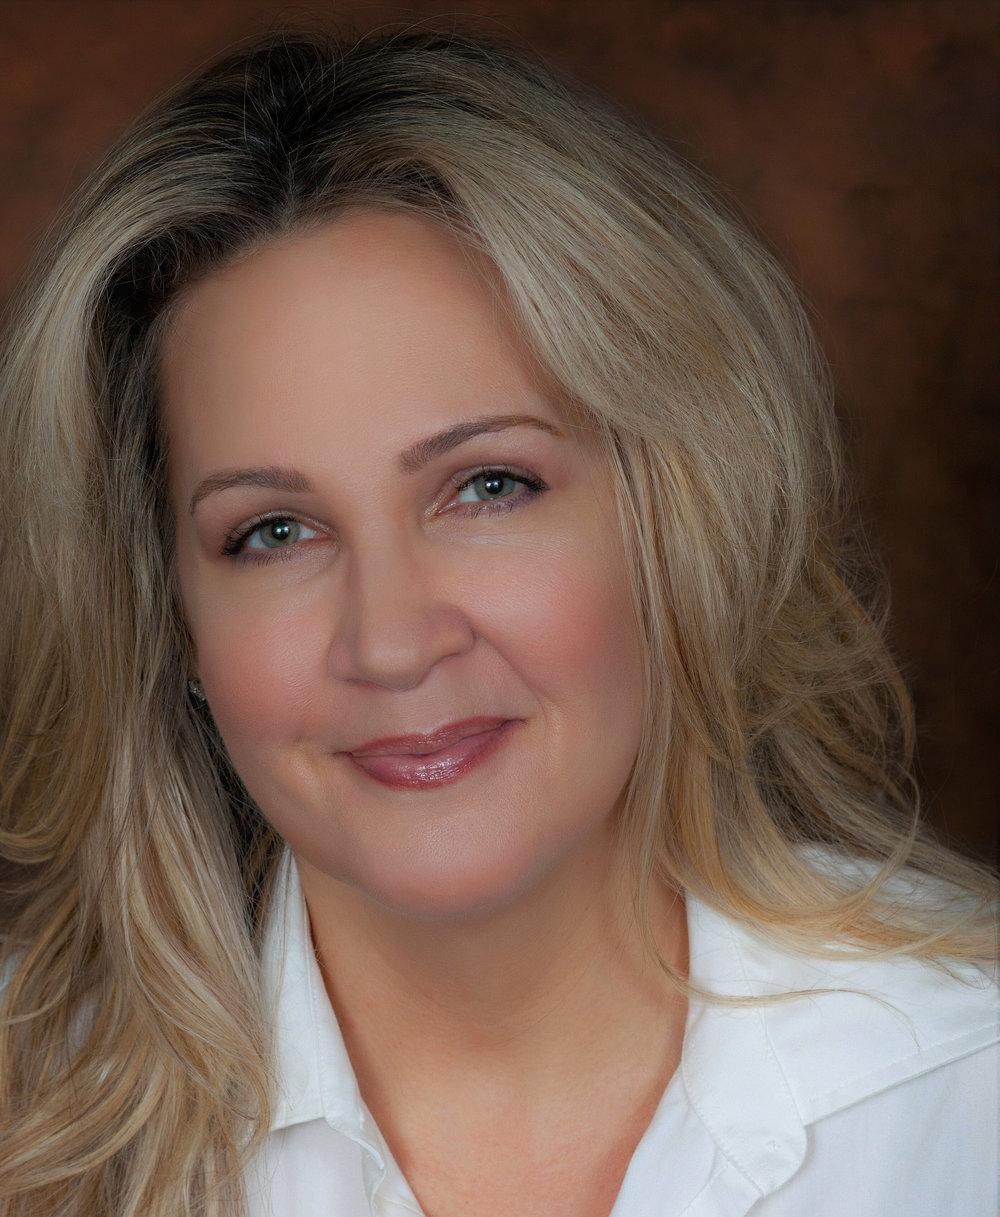 Cynthia Moffatt: CPCC, ACC   Cynthia is a partner in BreakPoint Solutions; she is Professional Certified Coach through the International Coach Federation.